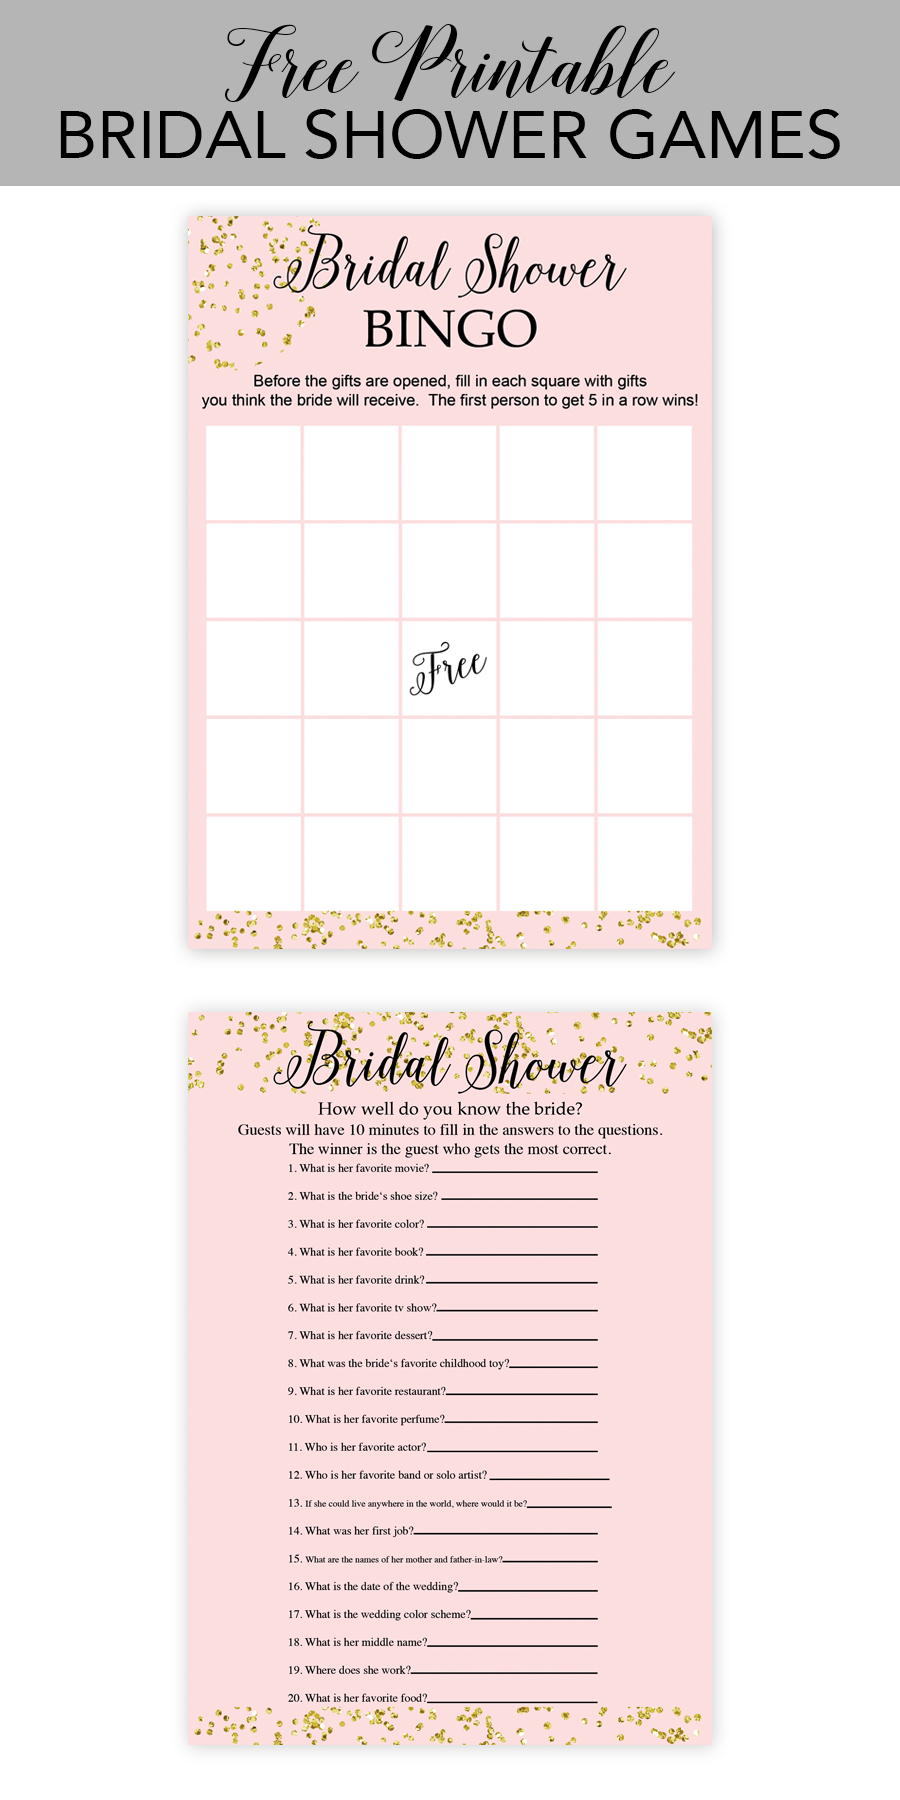 Free Printable Bridal Shower Games - Chicfetti - Free Printable Bridal Shower Games